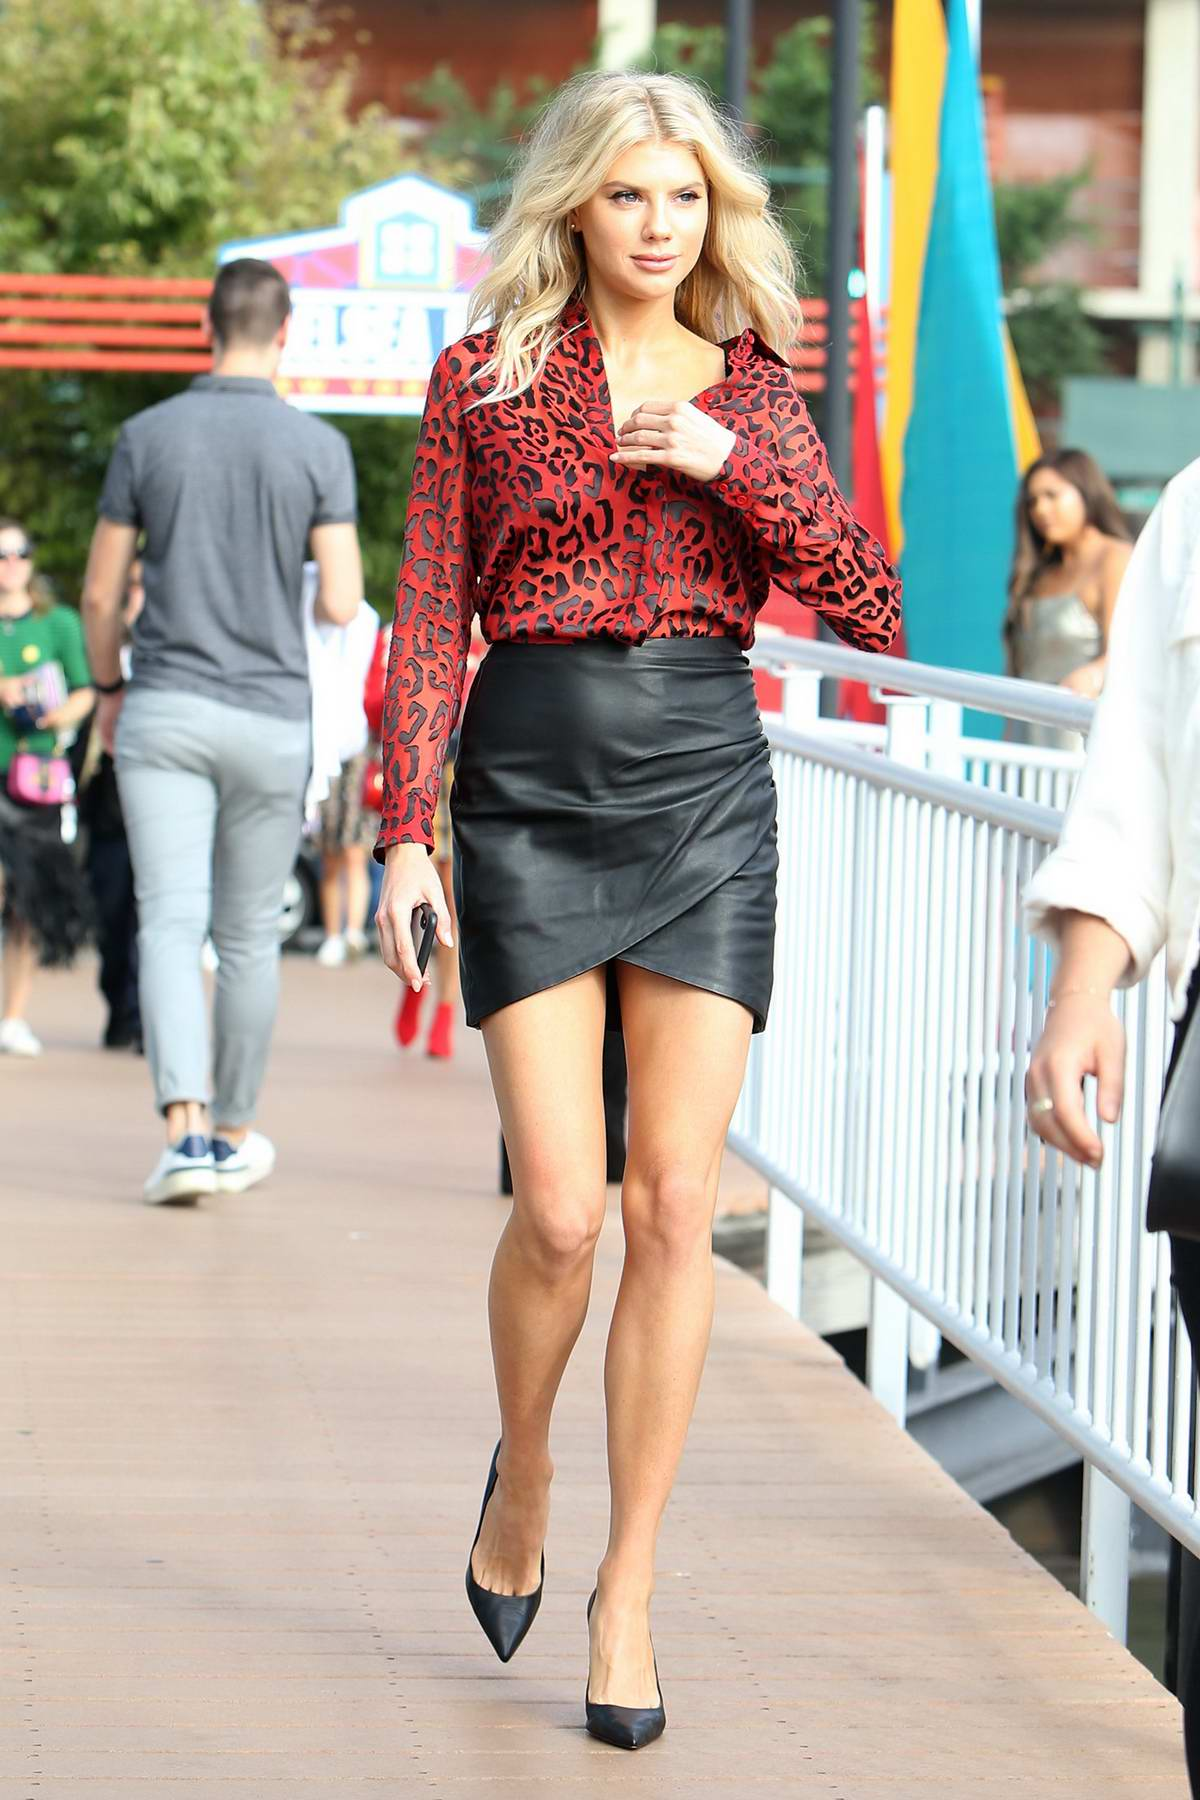 99d6b3ce60 Charlotte McKinney wearing a red animal print shirt with black leather skirt  as she arrives at Chelsea Piers for the Alice+Olivia Show during New York  ...